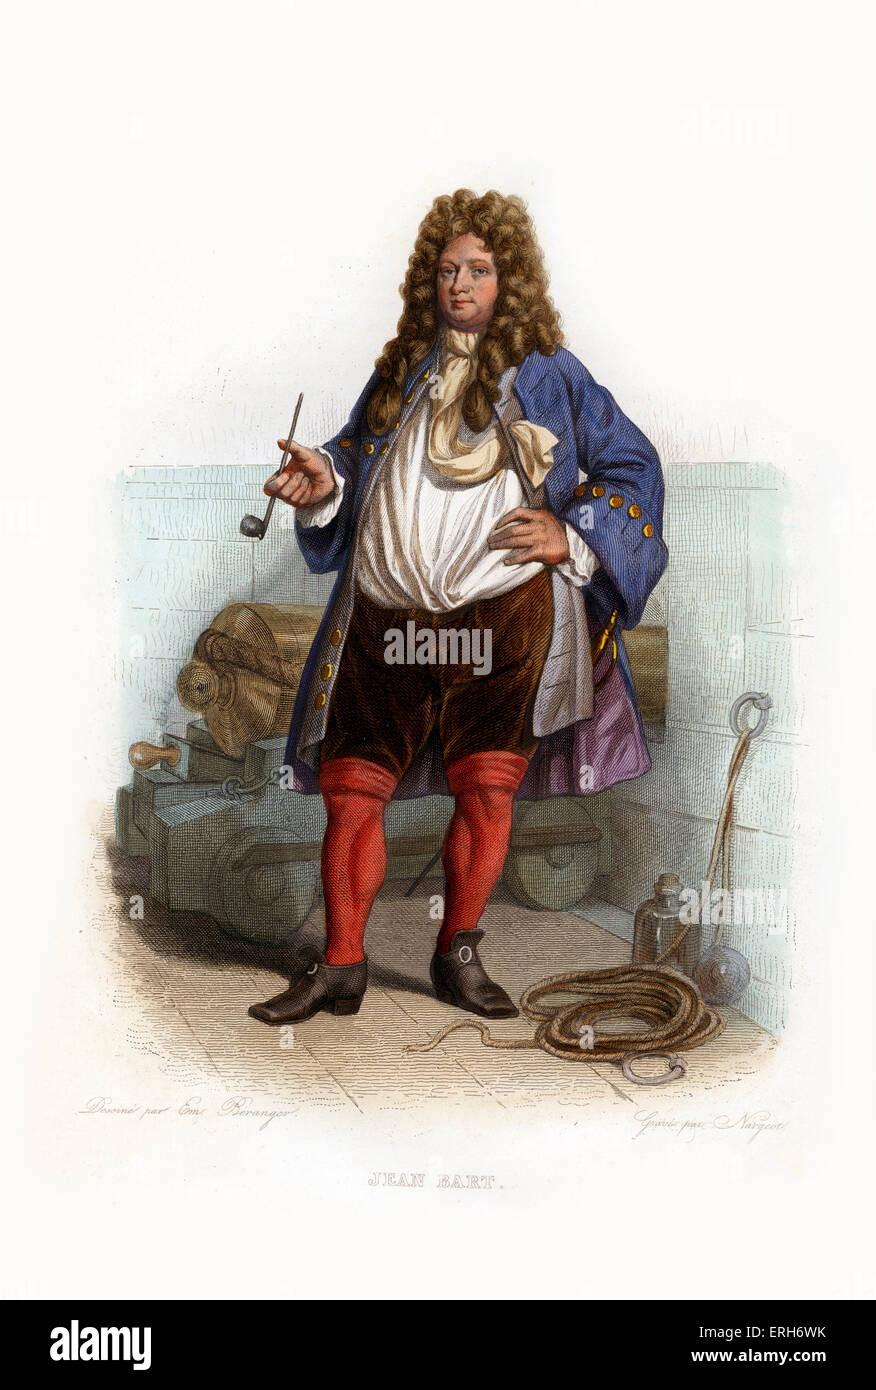 Jean Bart. French naval commander and privateer. 1650-1702. Engraving by Nargeot.c.1845 - Stock Image